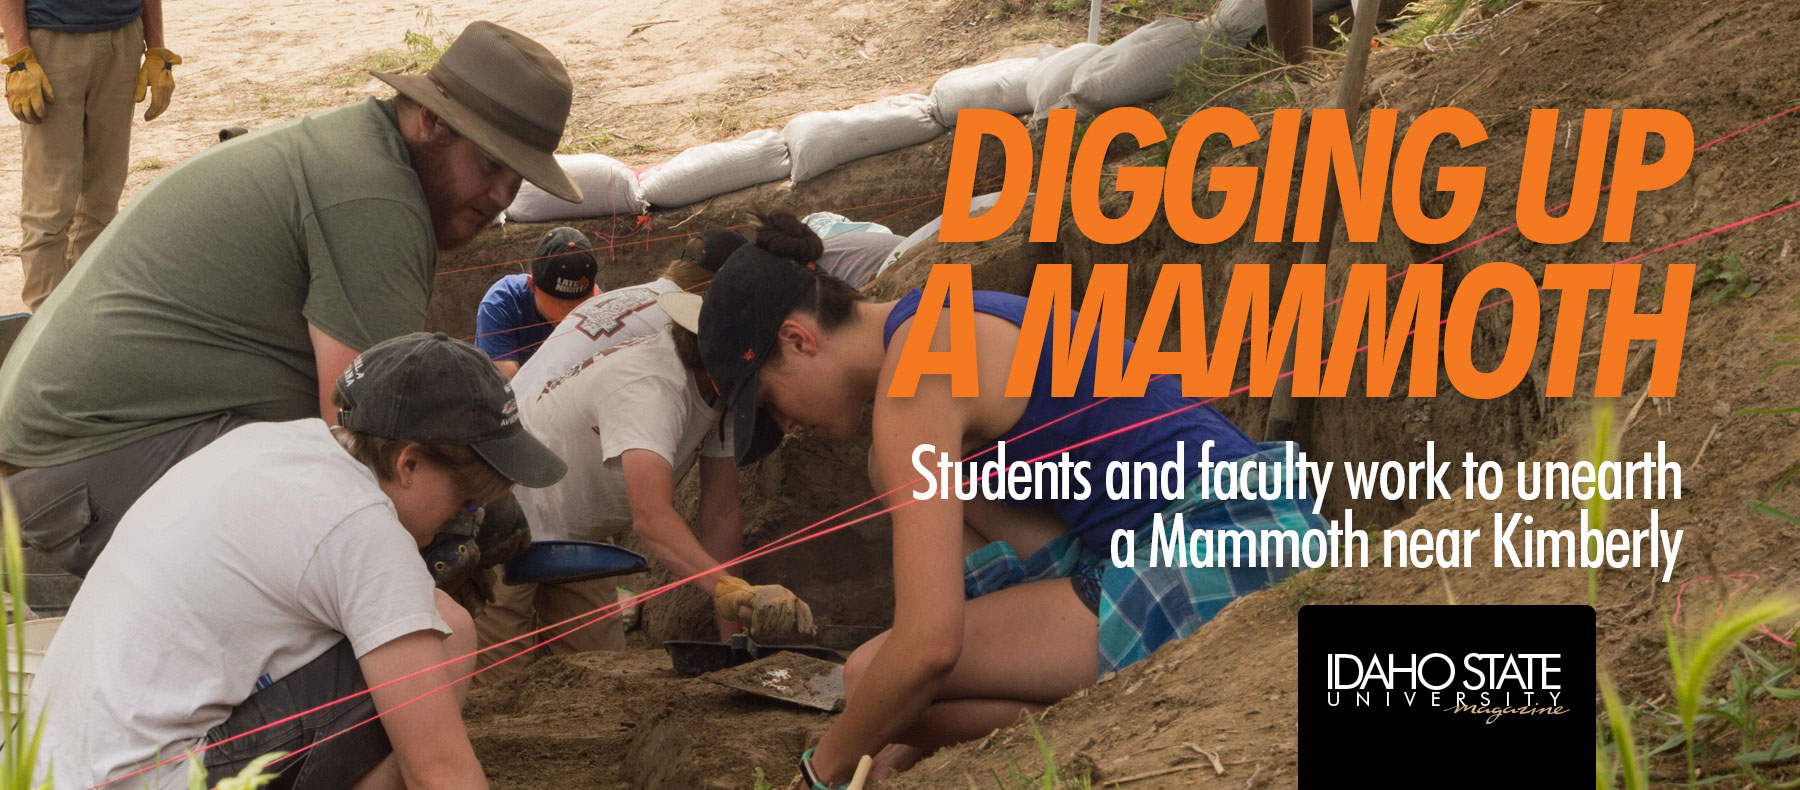 Digging up a mammoth. Students and faculty work to unearth a mammoth near Kimberly.